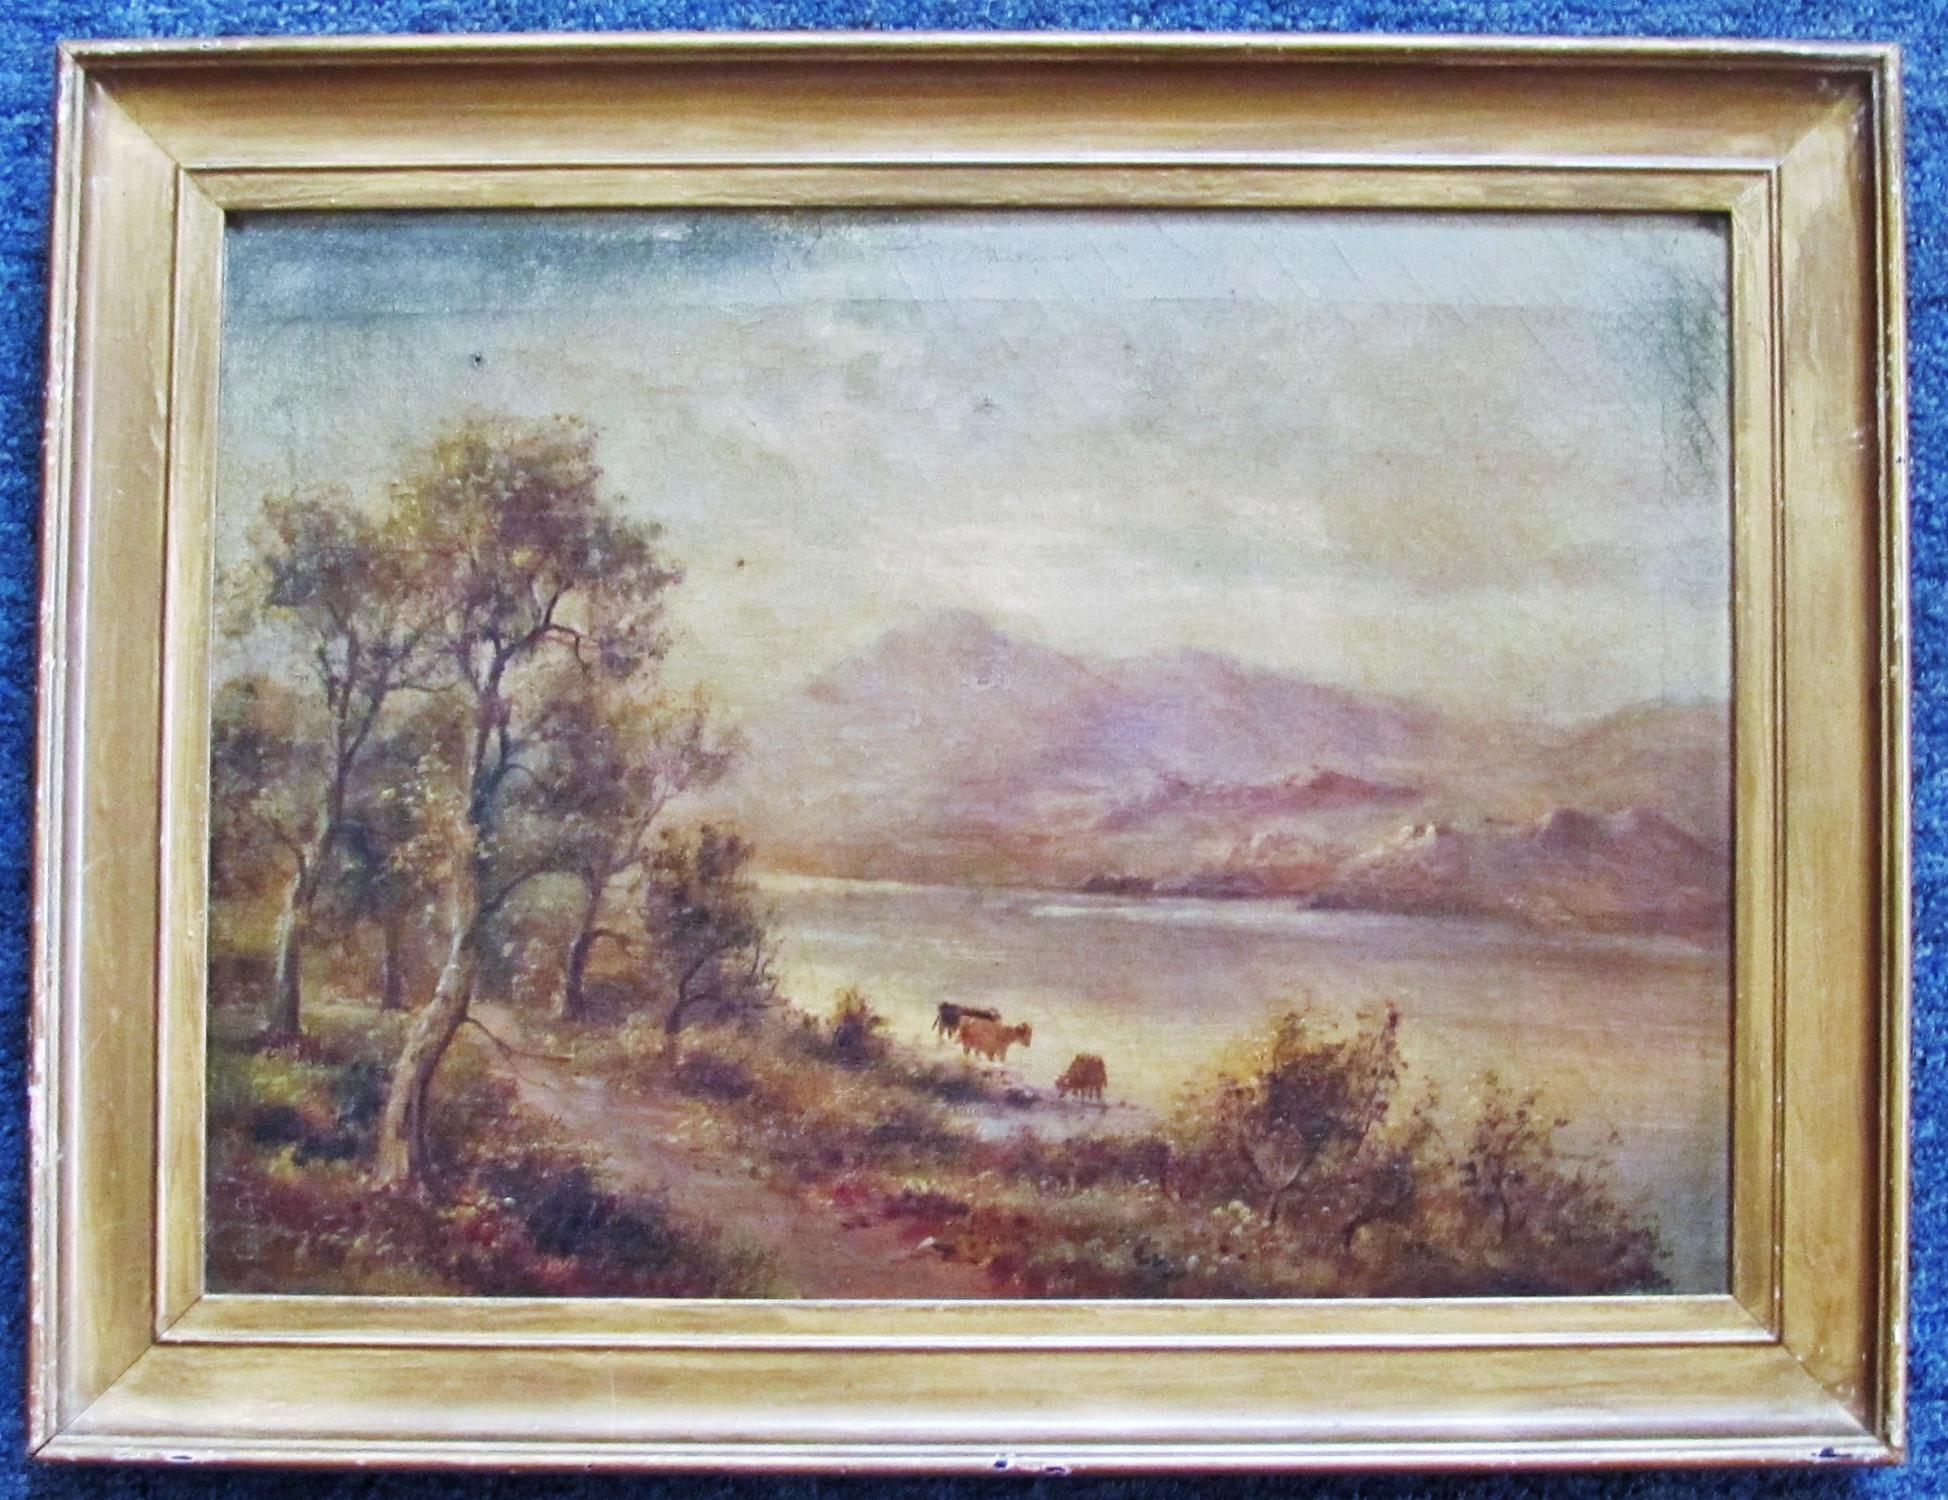 CATTLE_WATERING_ON_THE_CONWAY_RIVER__ORIGINAL_OIL_PAINTING_SIDNEY_YATES_JOHNSON_Very_Good